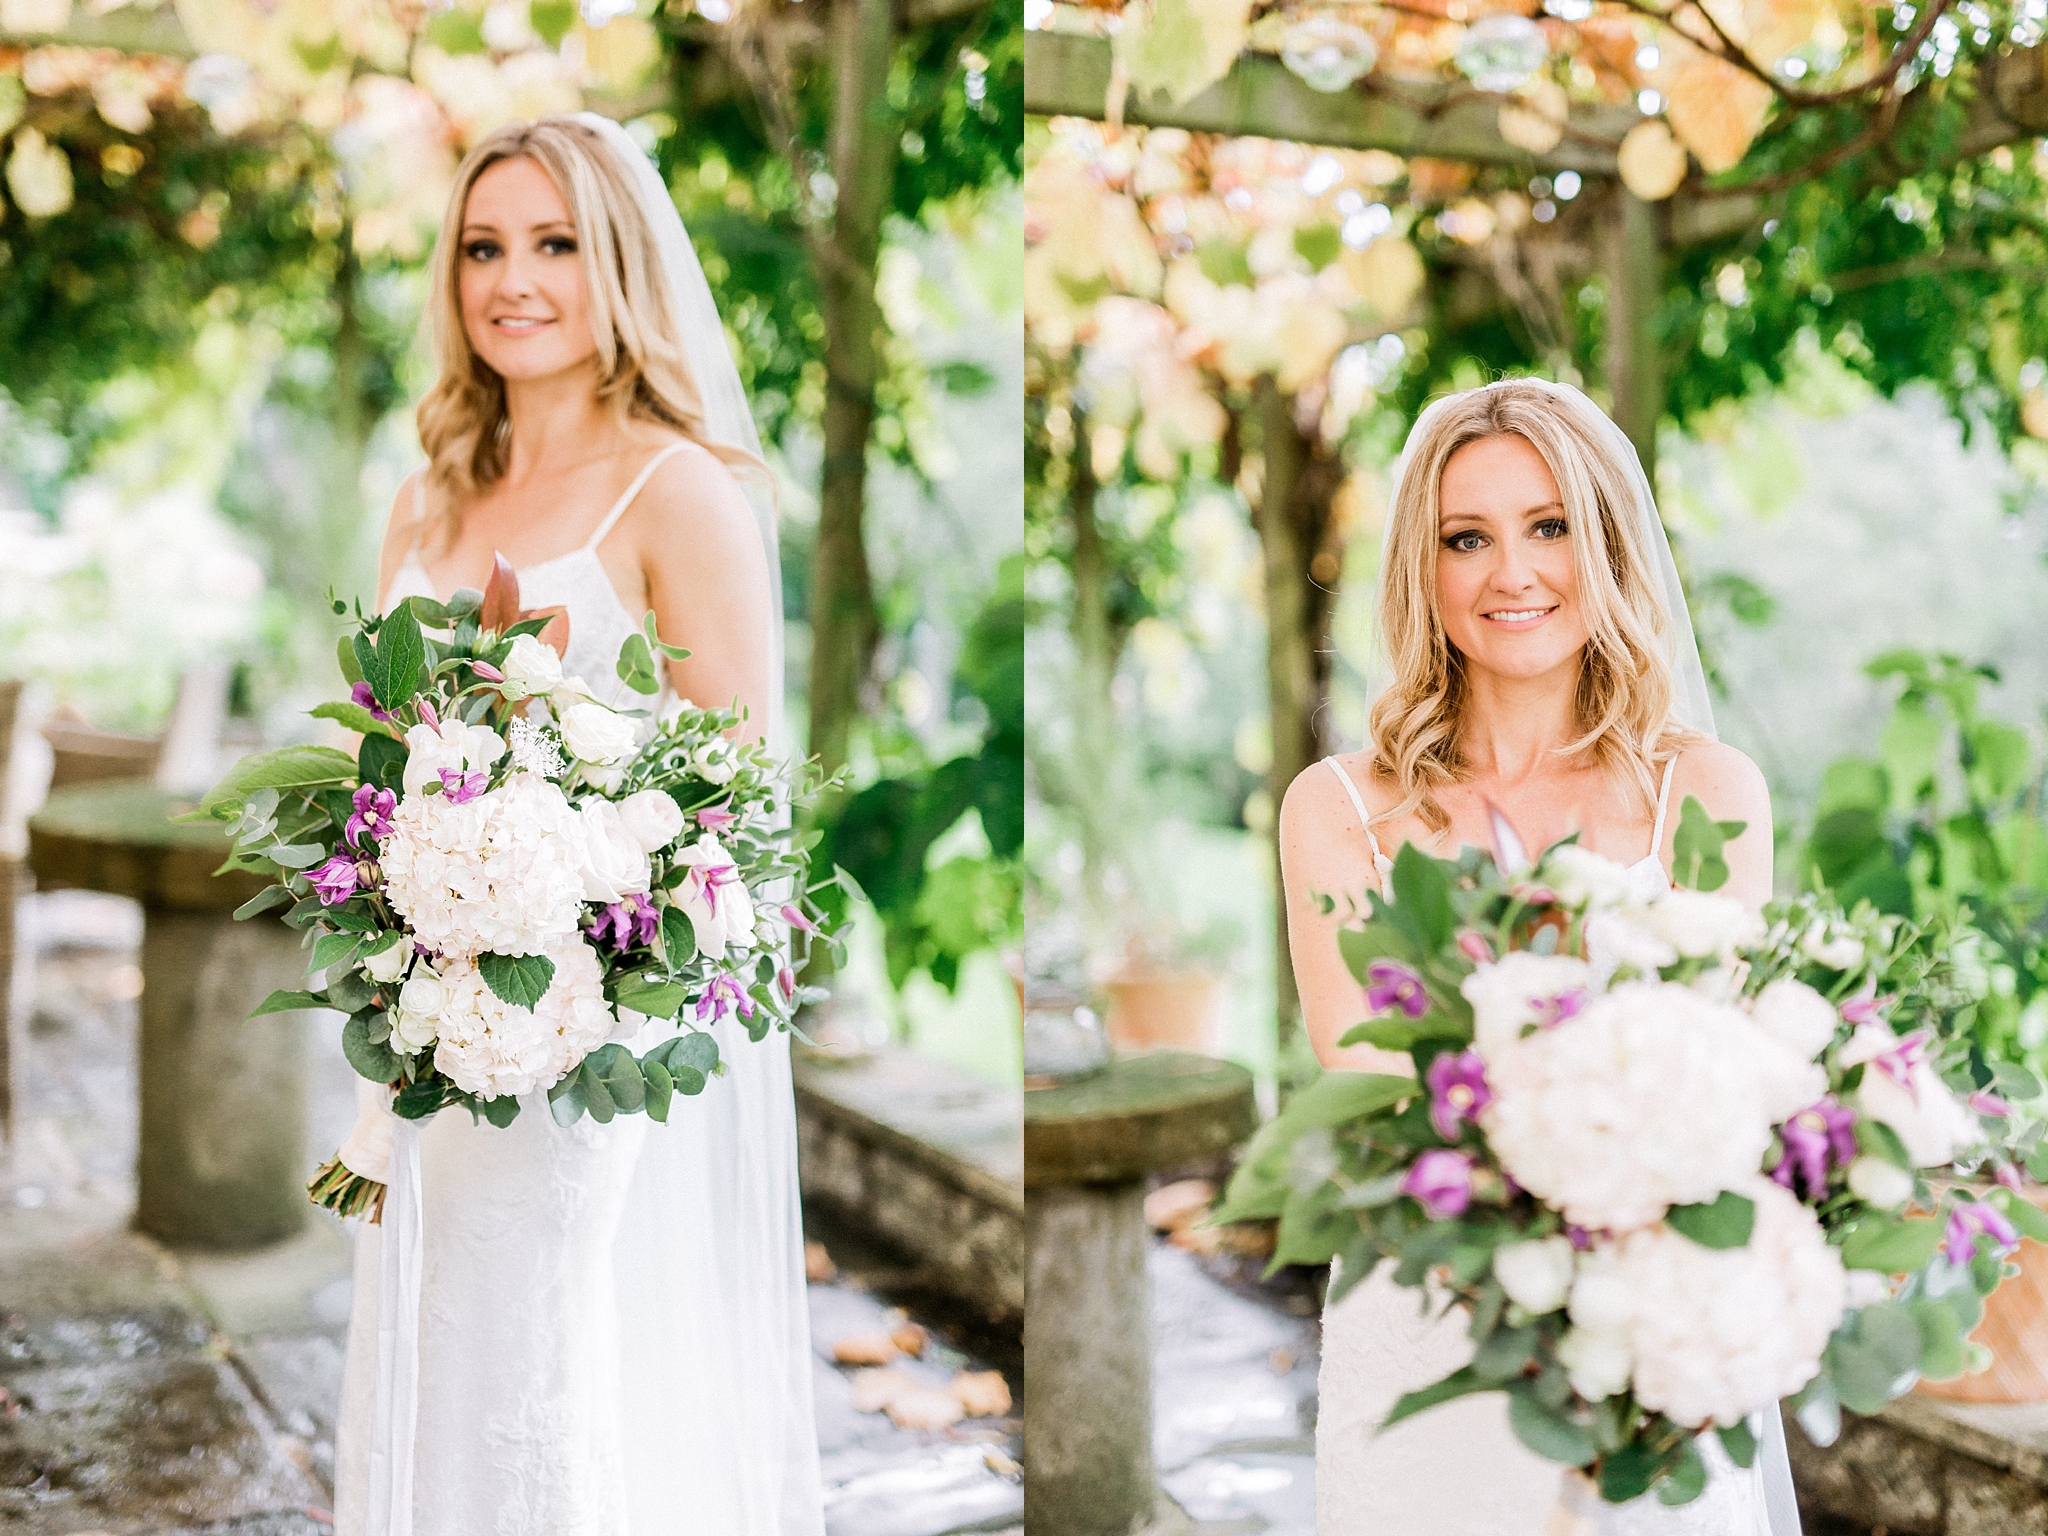 Bride and her bouquet at the Pheasant Hotel, Harome